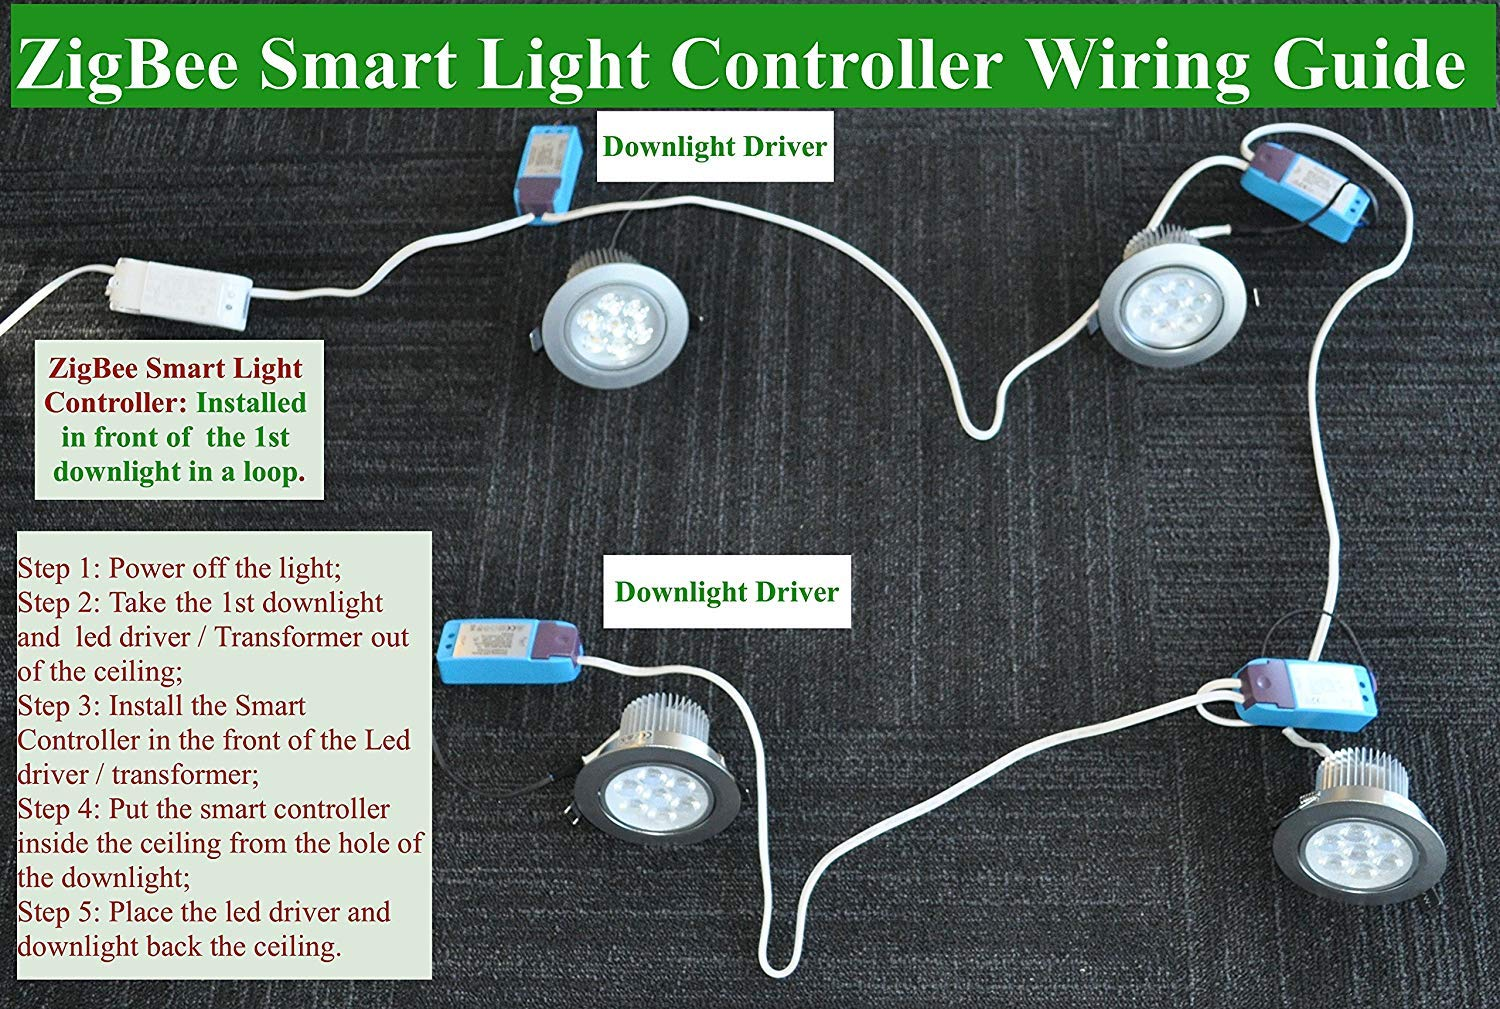 Wondrous Smart Zigbee Licht Dimmer Fur Echo Plus Zigbee Bridge Smartthings Wiring Digital Resources Zidurslowmaporg